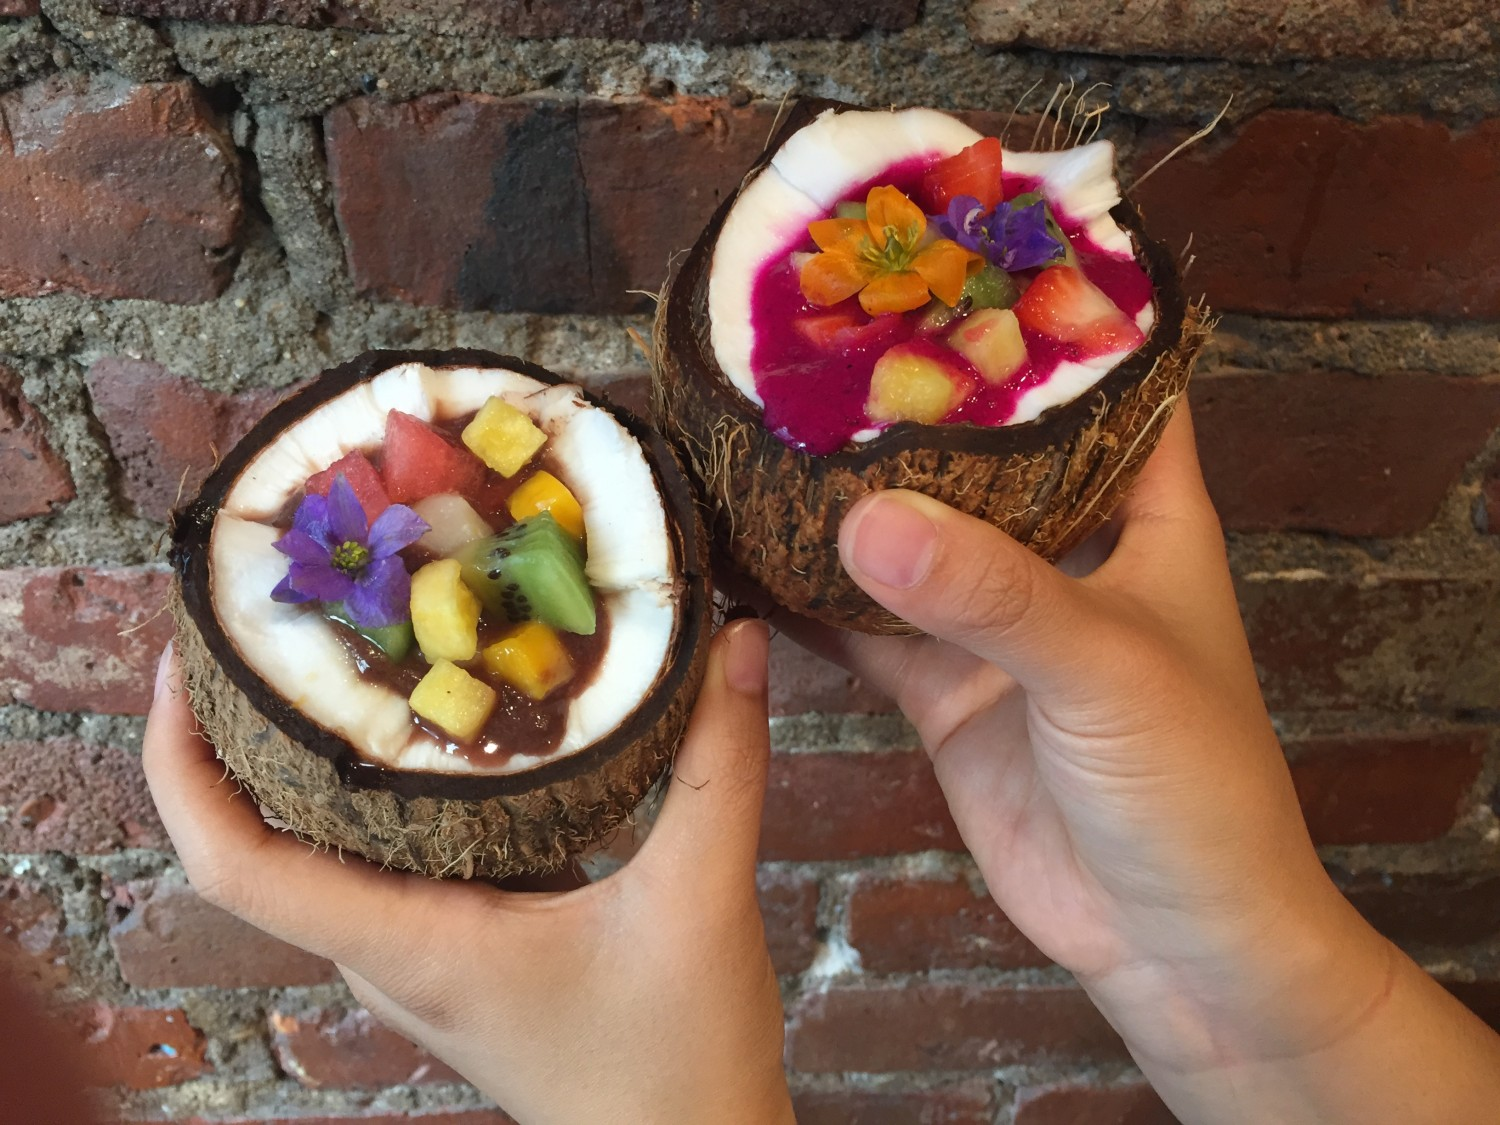 Açai (left) and pitaya, or dragon fruit, bowls at Juicy Spot Cafe. (Annie Wu/The Epoch Times)